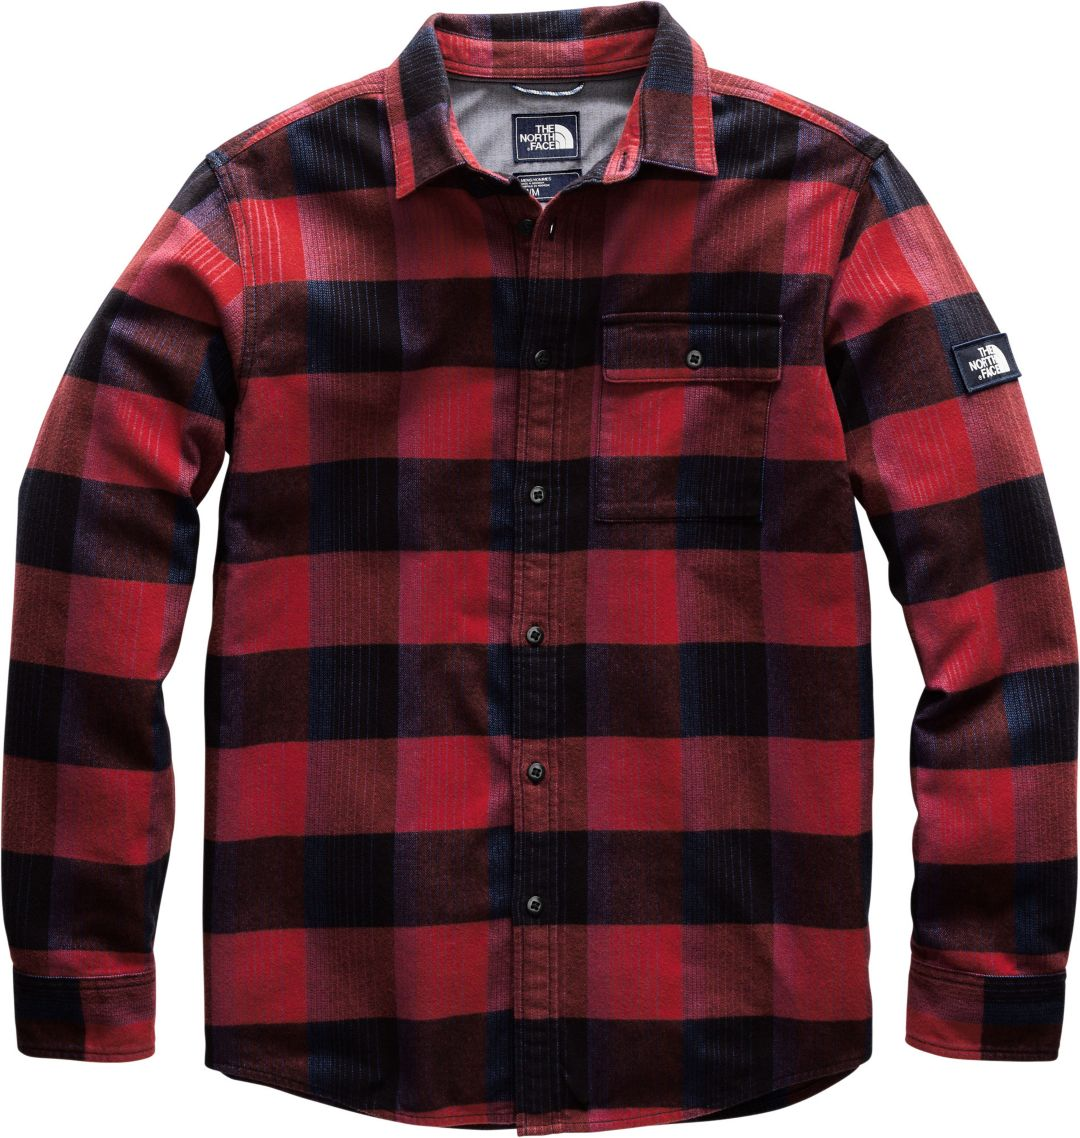 9f49c1164 The North Face Men's Stayside Long Sleeve Shirt